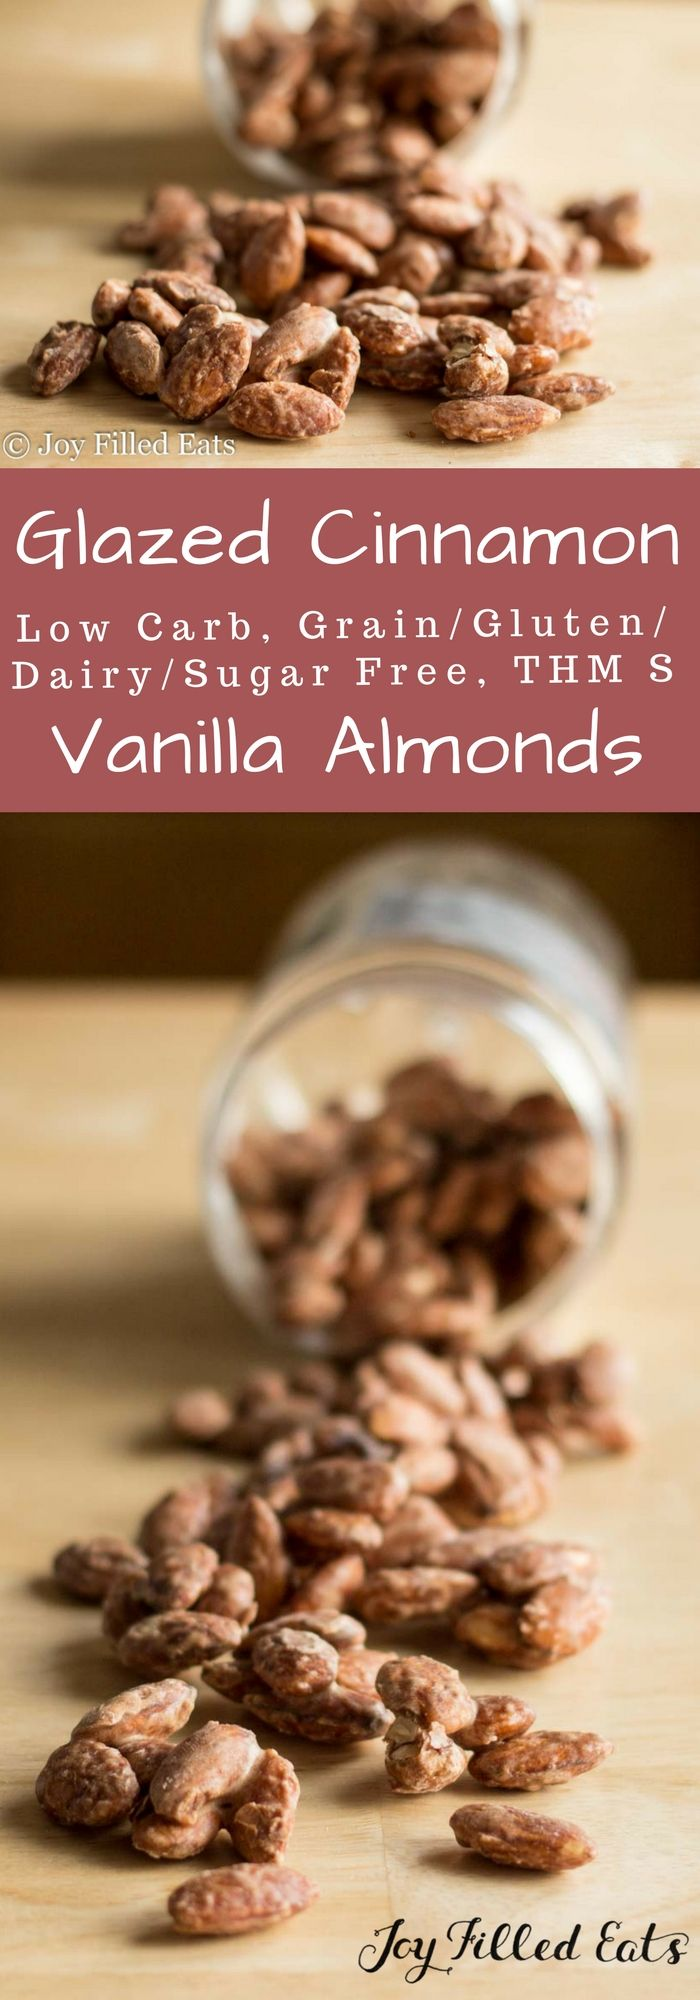 Glazed Cinnamon Vanilla Almonds - Low Carb, Grain/Gluten/Sugar/Dairy/Egg Free, THM S - These Glazed Cinnamon Vanilla Almonds are the perfect sweet treat for when you are on the go. You can keep a little container in your purse to help avoid tempting sweets on the road. via @joyfilledeats